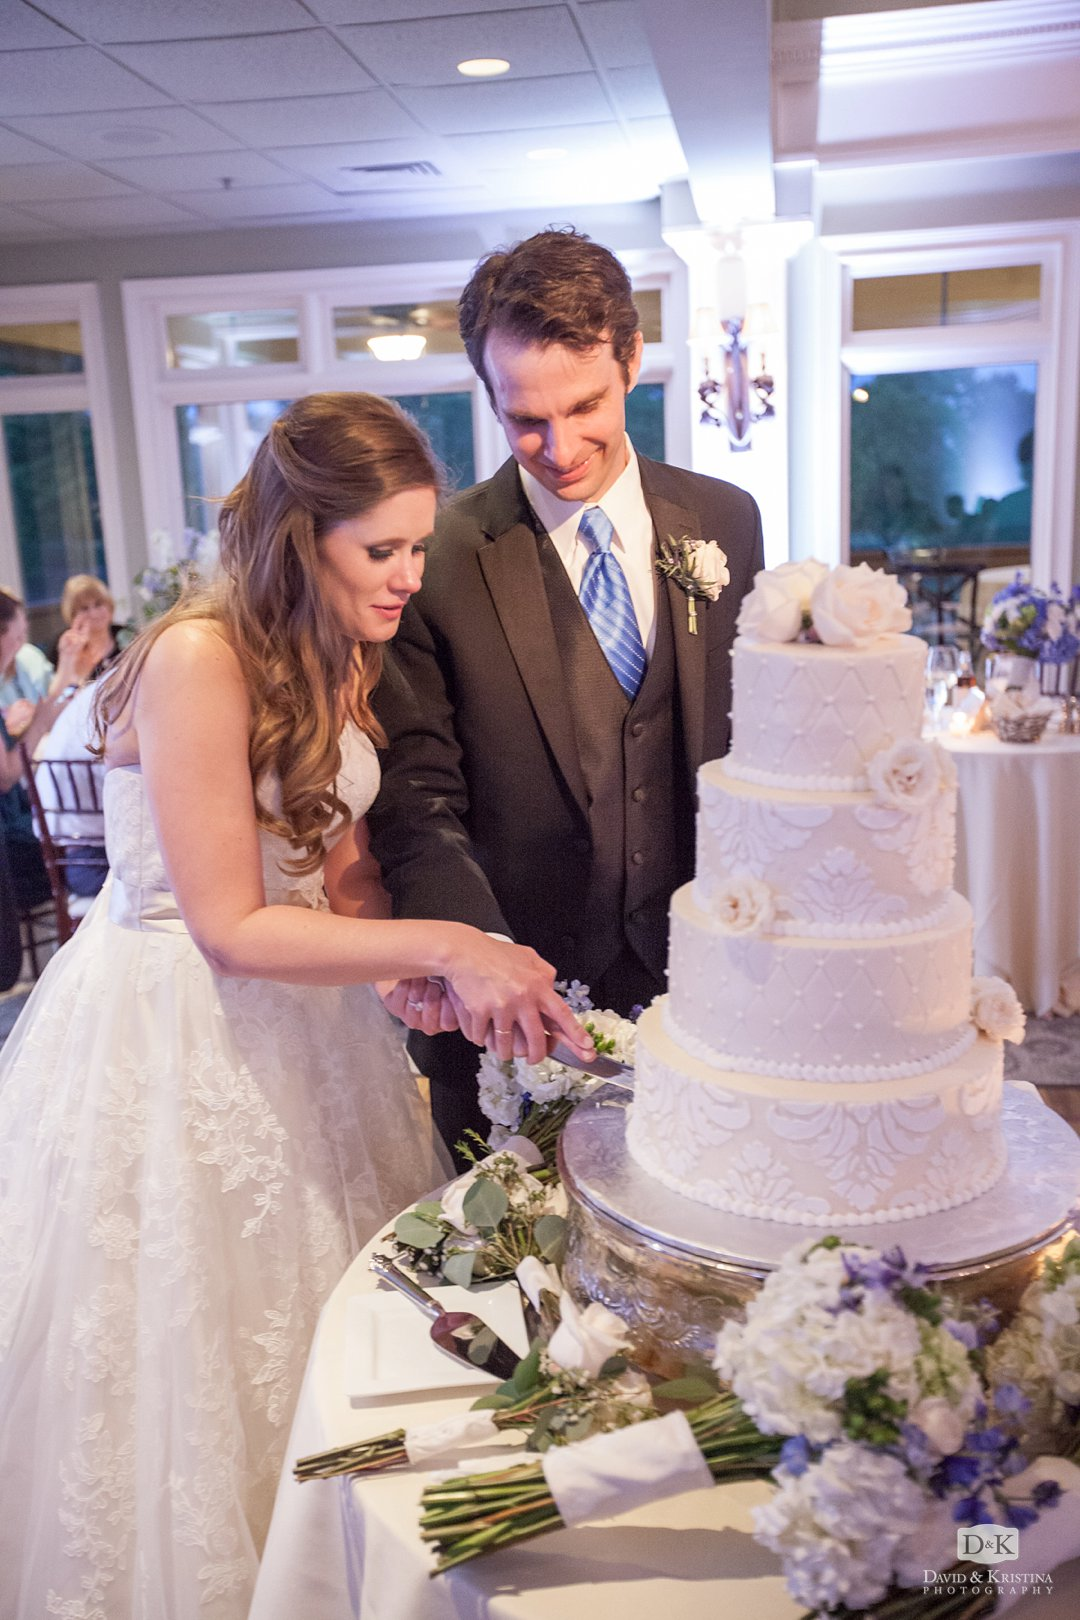 Mike and Carrie cut their wedding cake